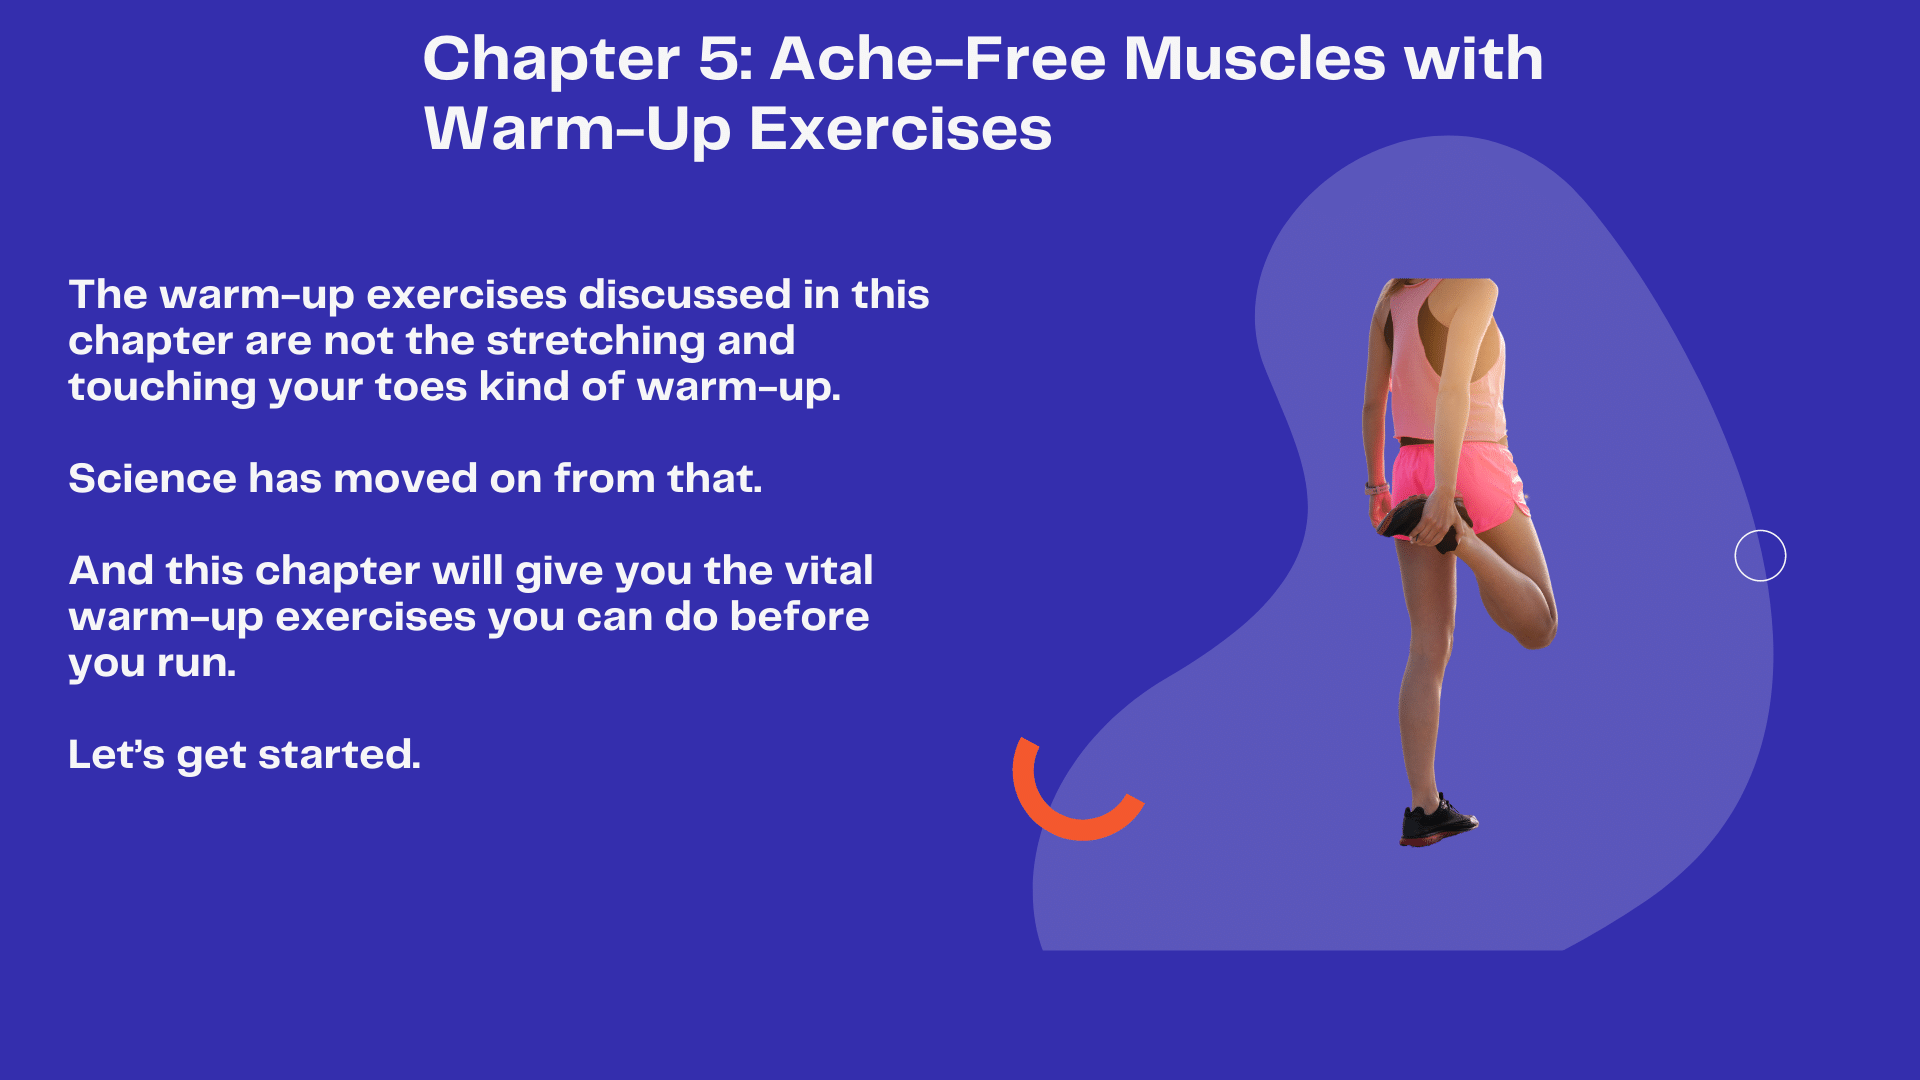 Chapter 5: Ache-Free Muscles with Warm-Up Exercises